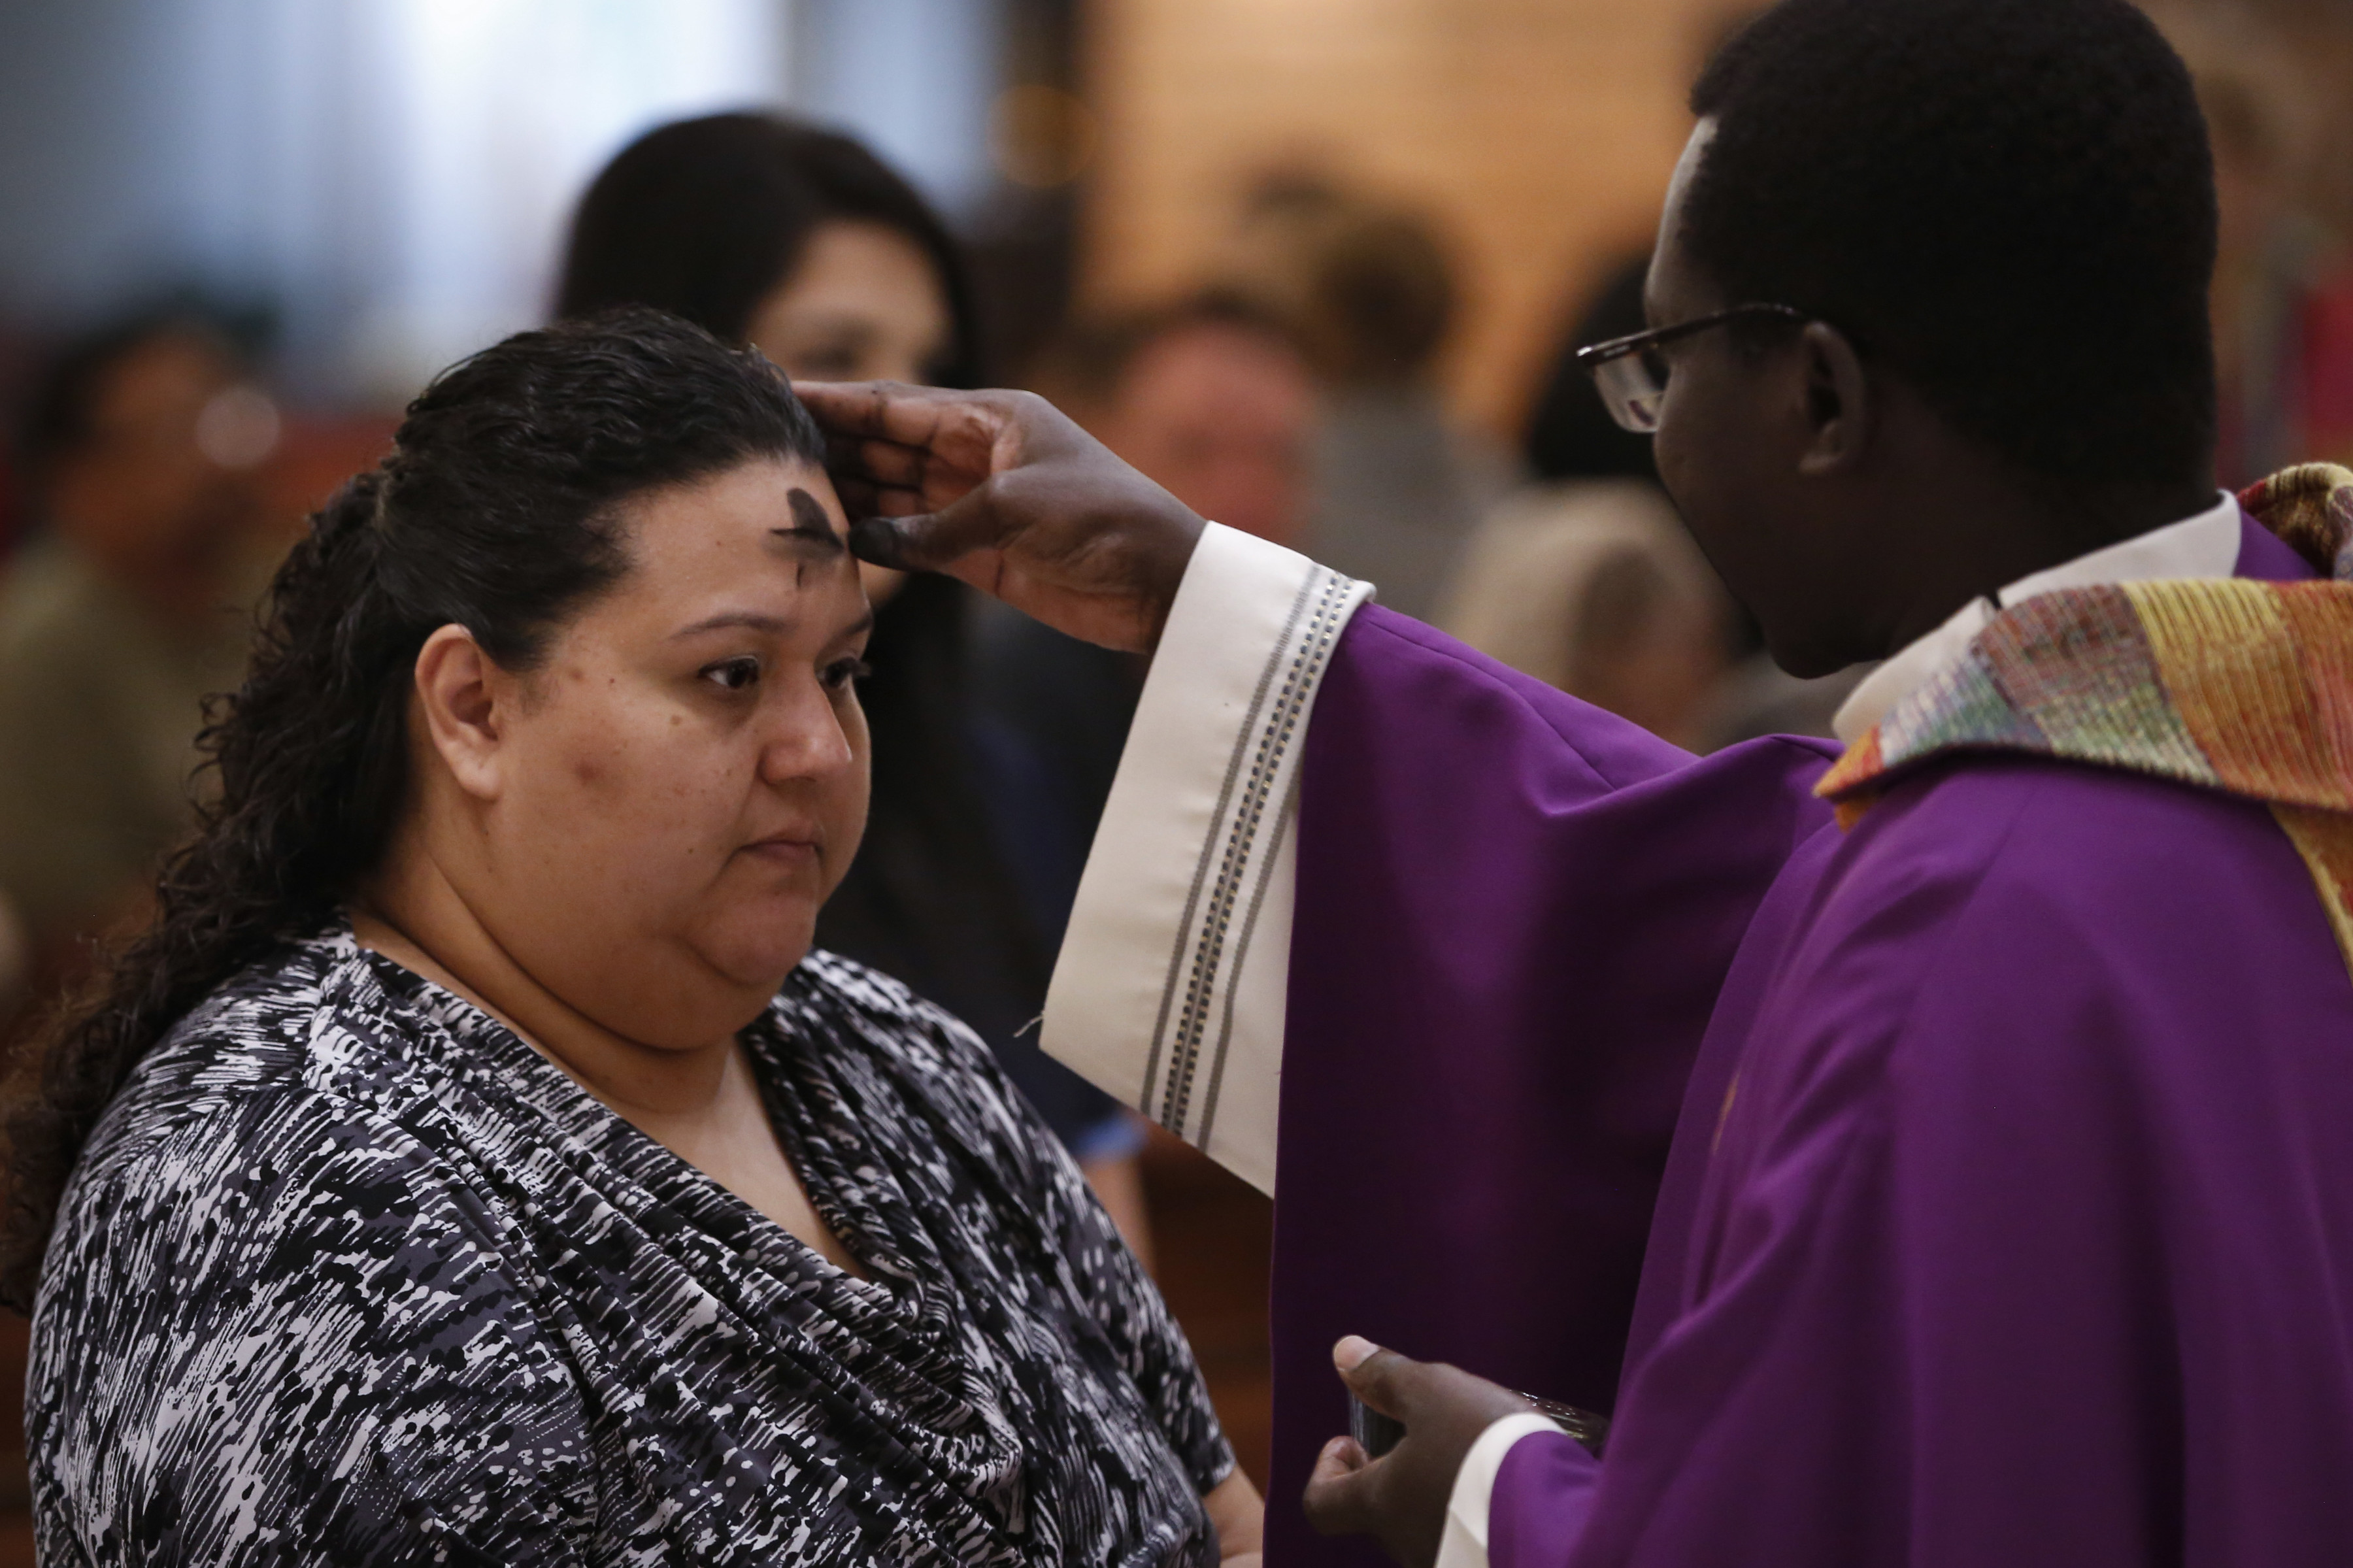 Late Bishop S Little Black Book Provides Many With Lenten